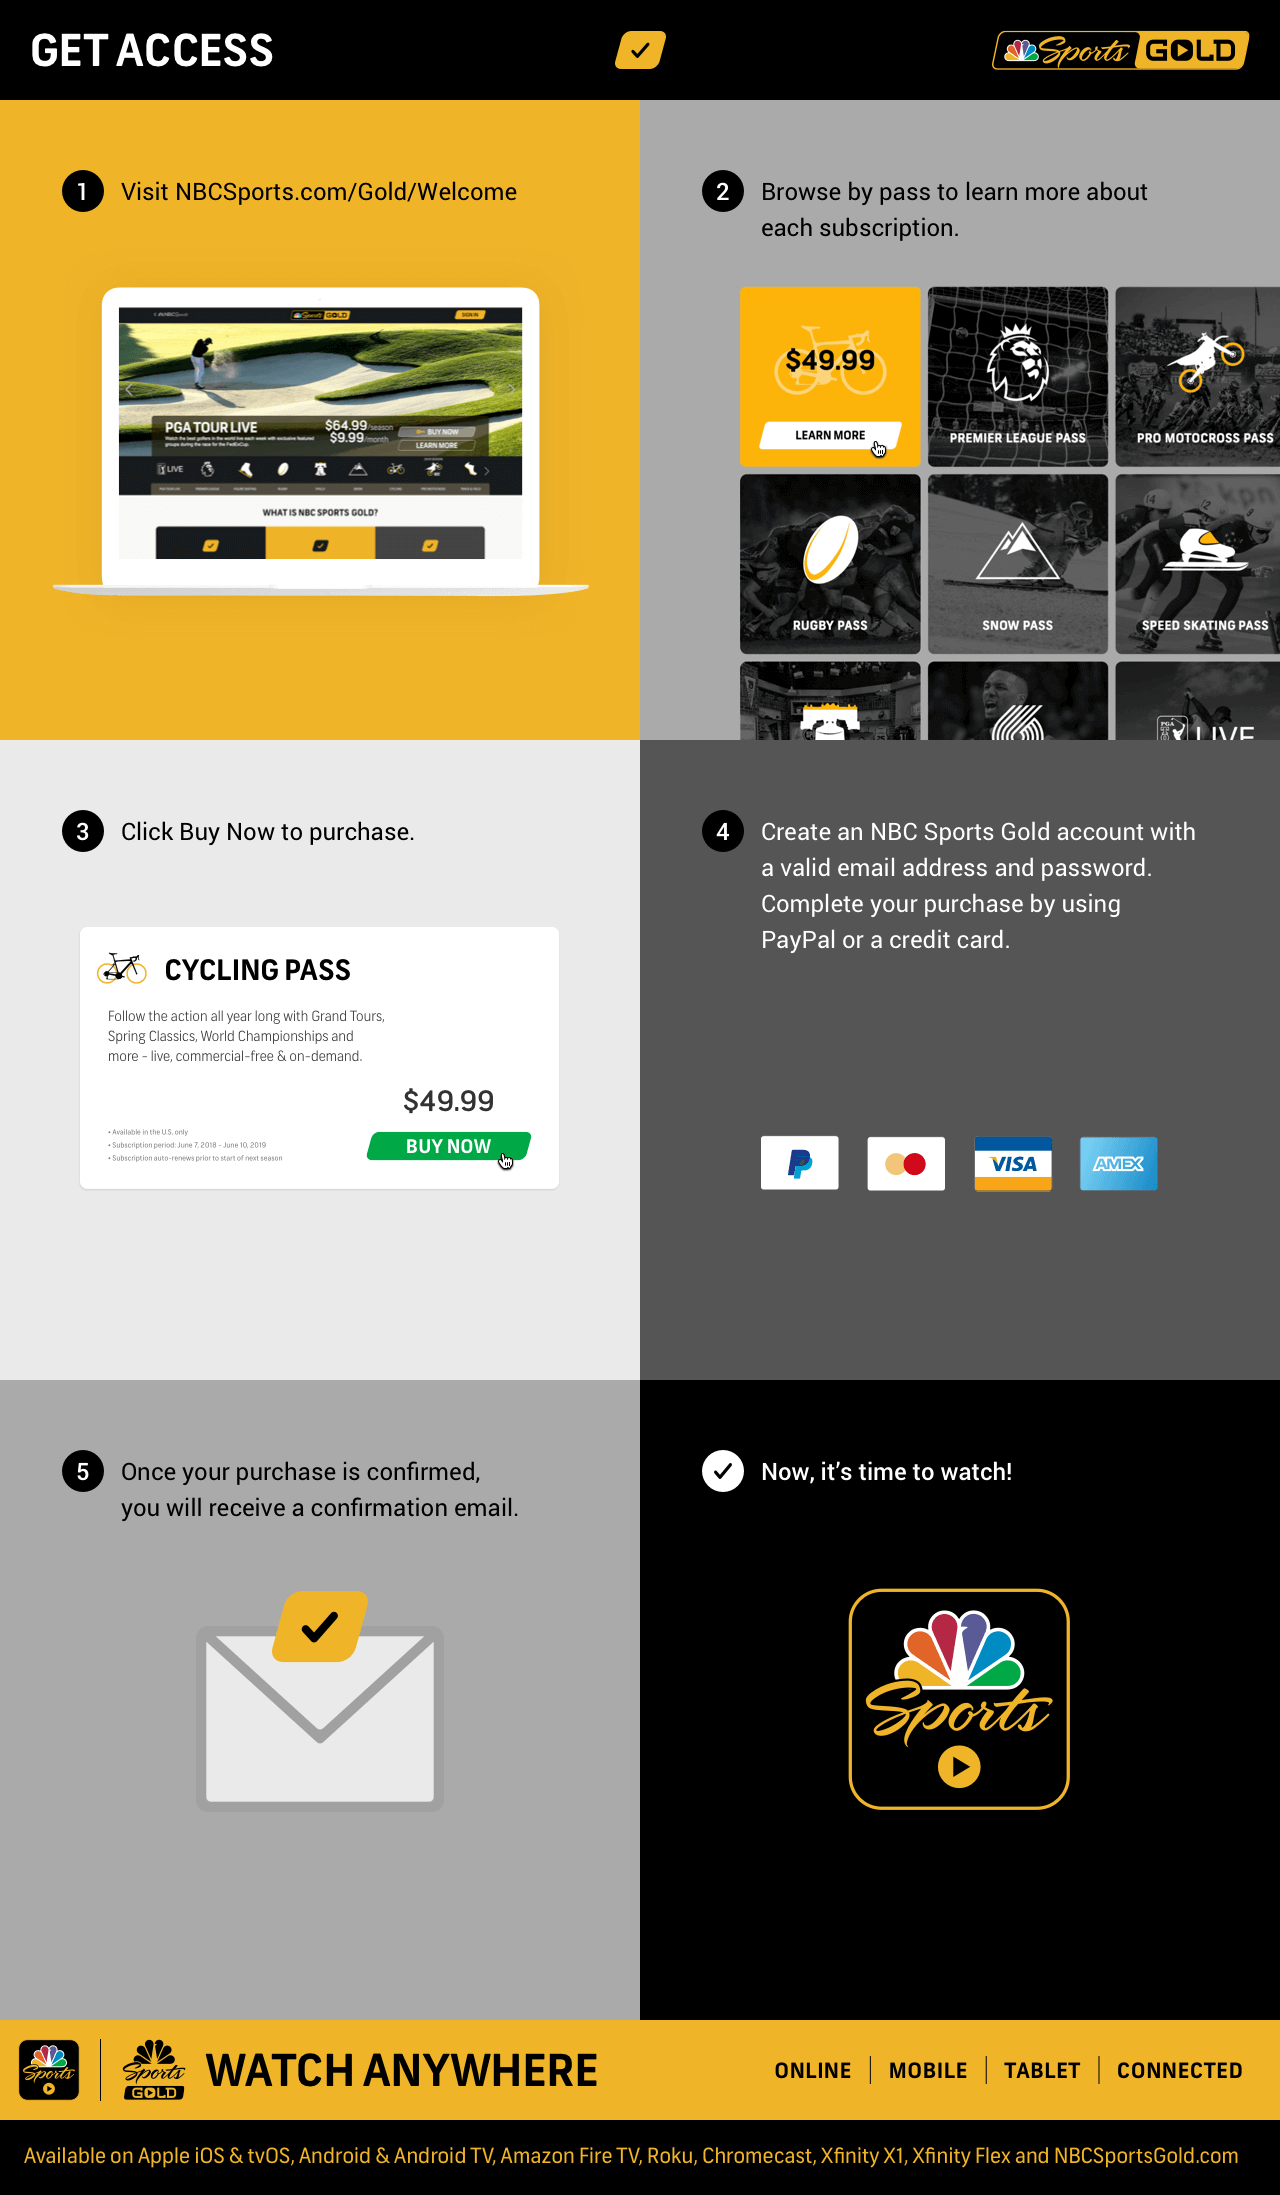 Quick Start Guide - Get Access | NBC Sports Gold